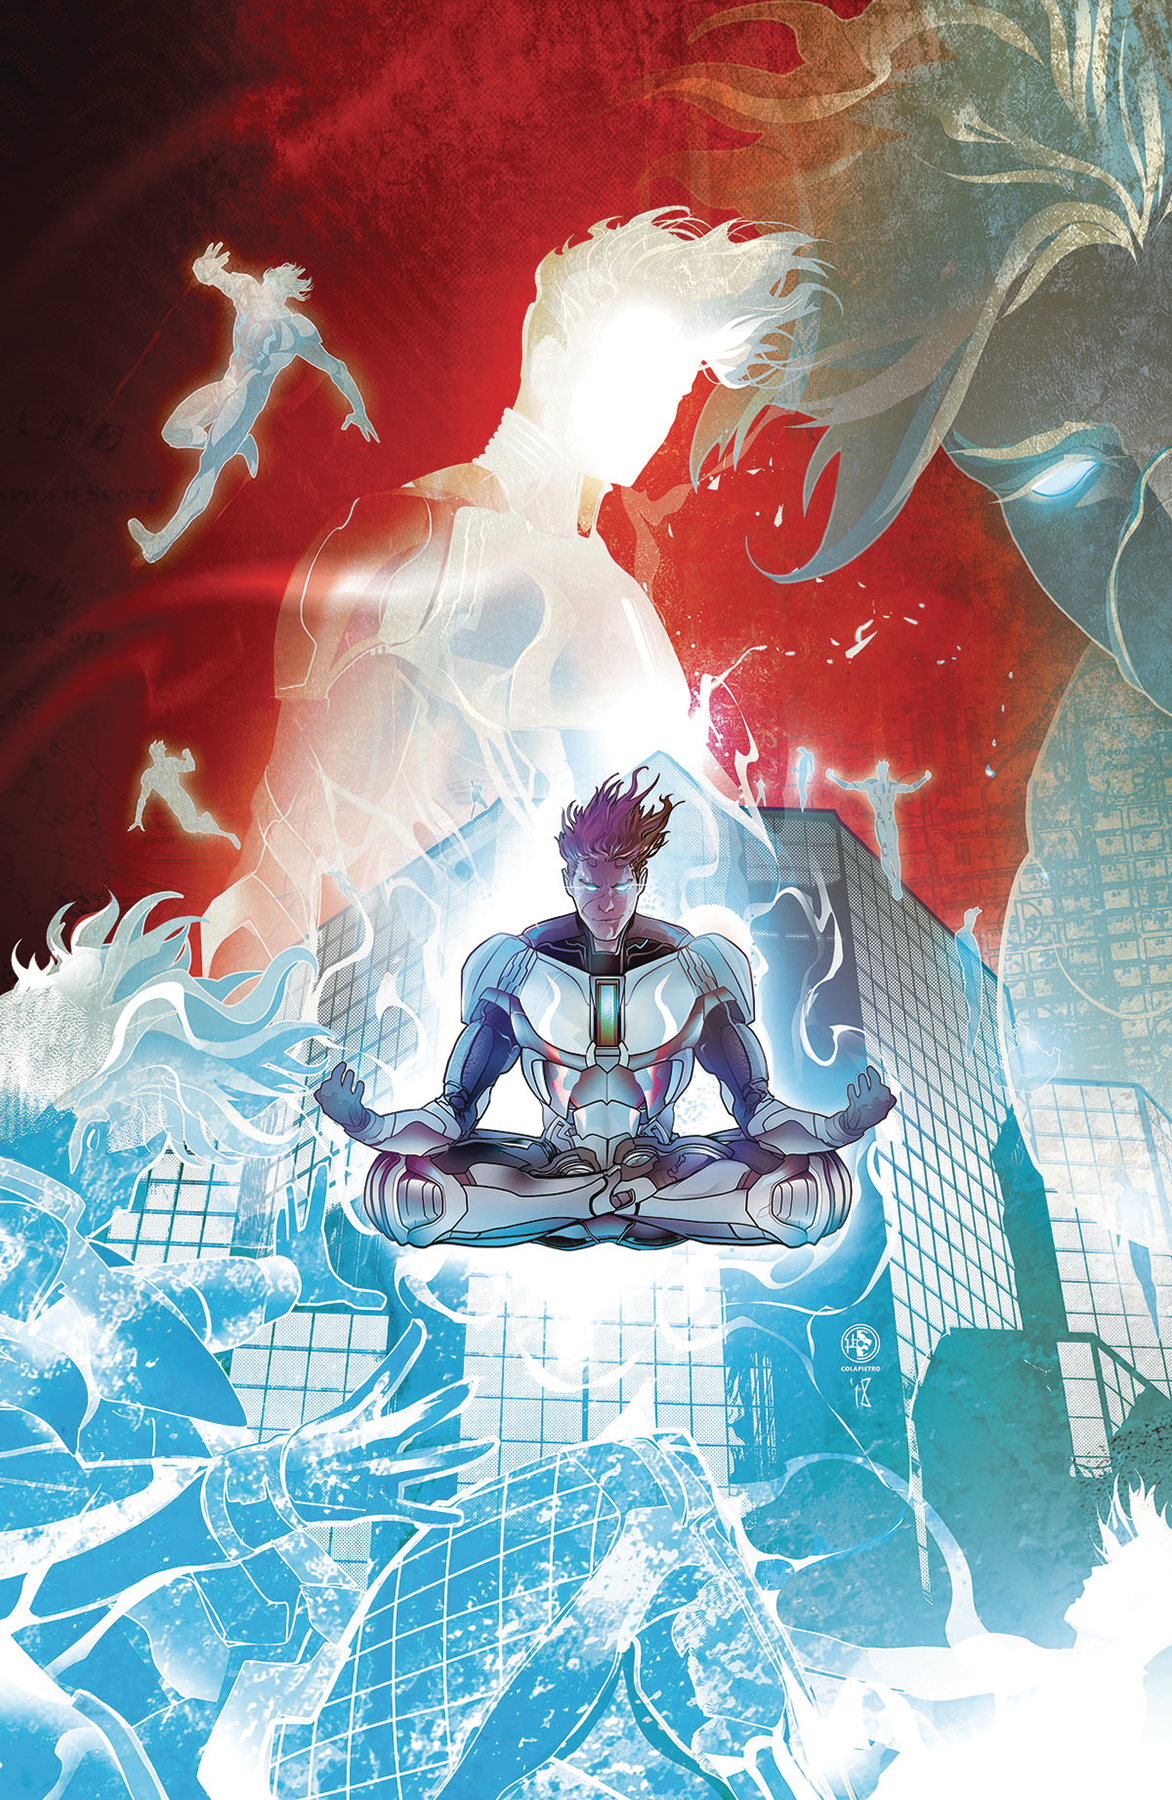 CATALYST PRIME ASTONISHER #14